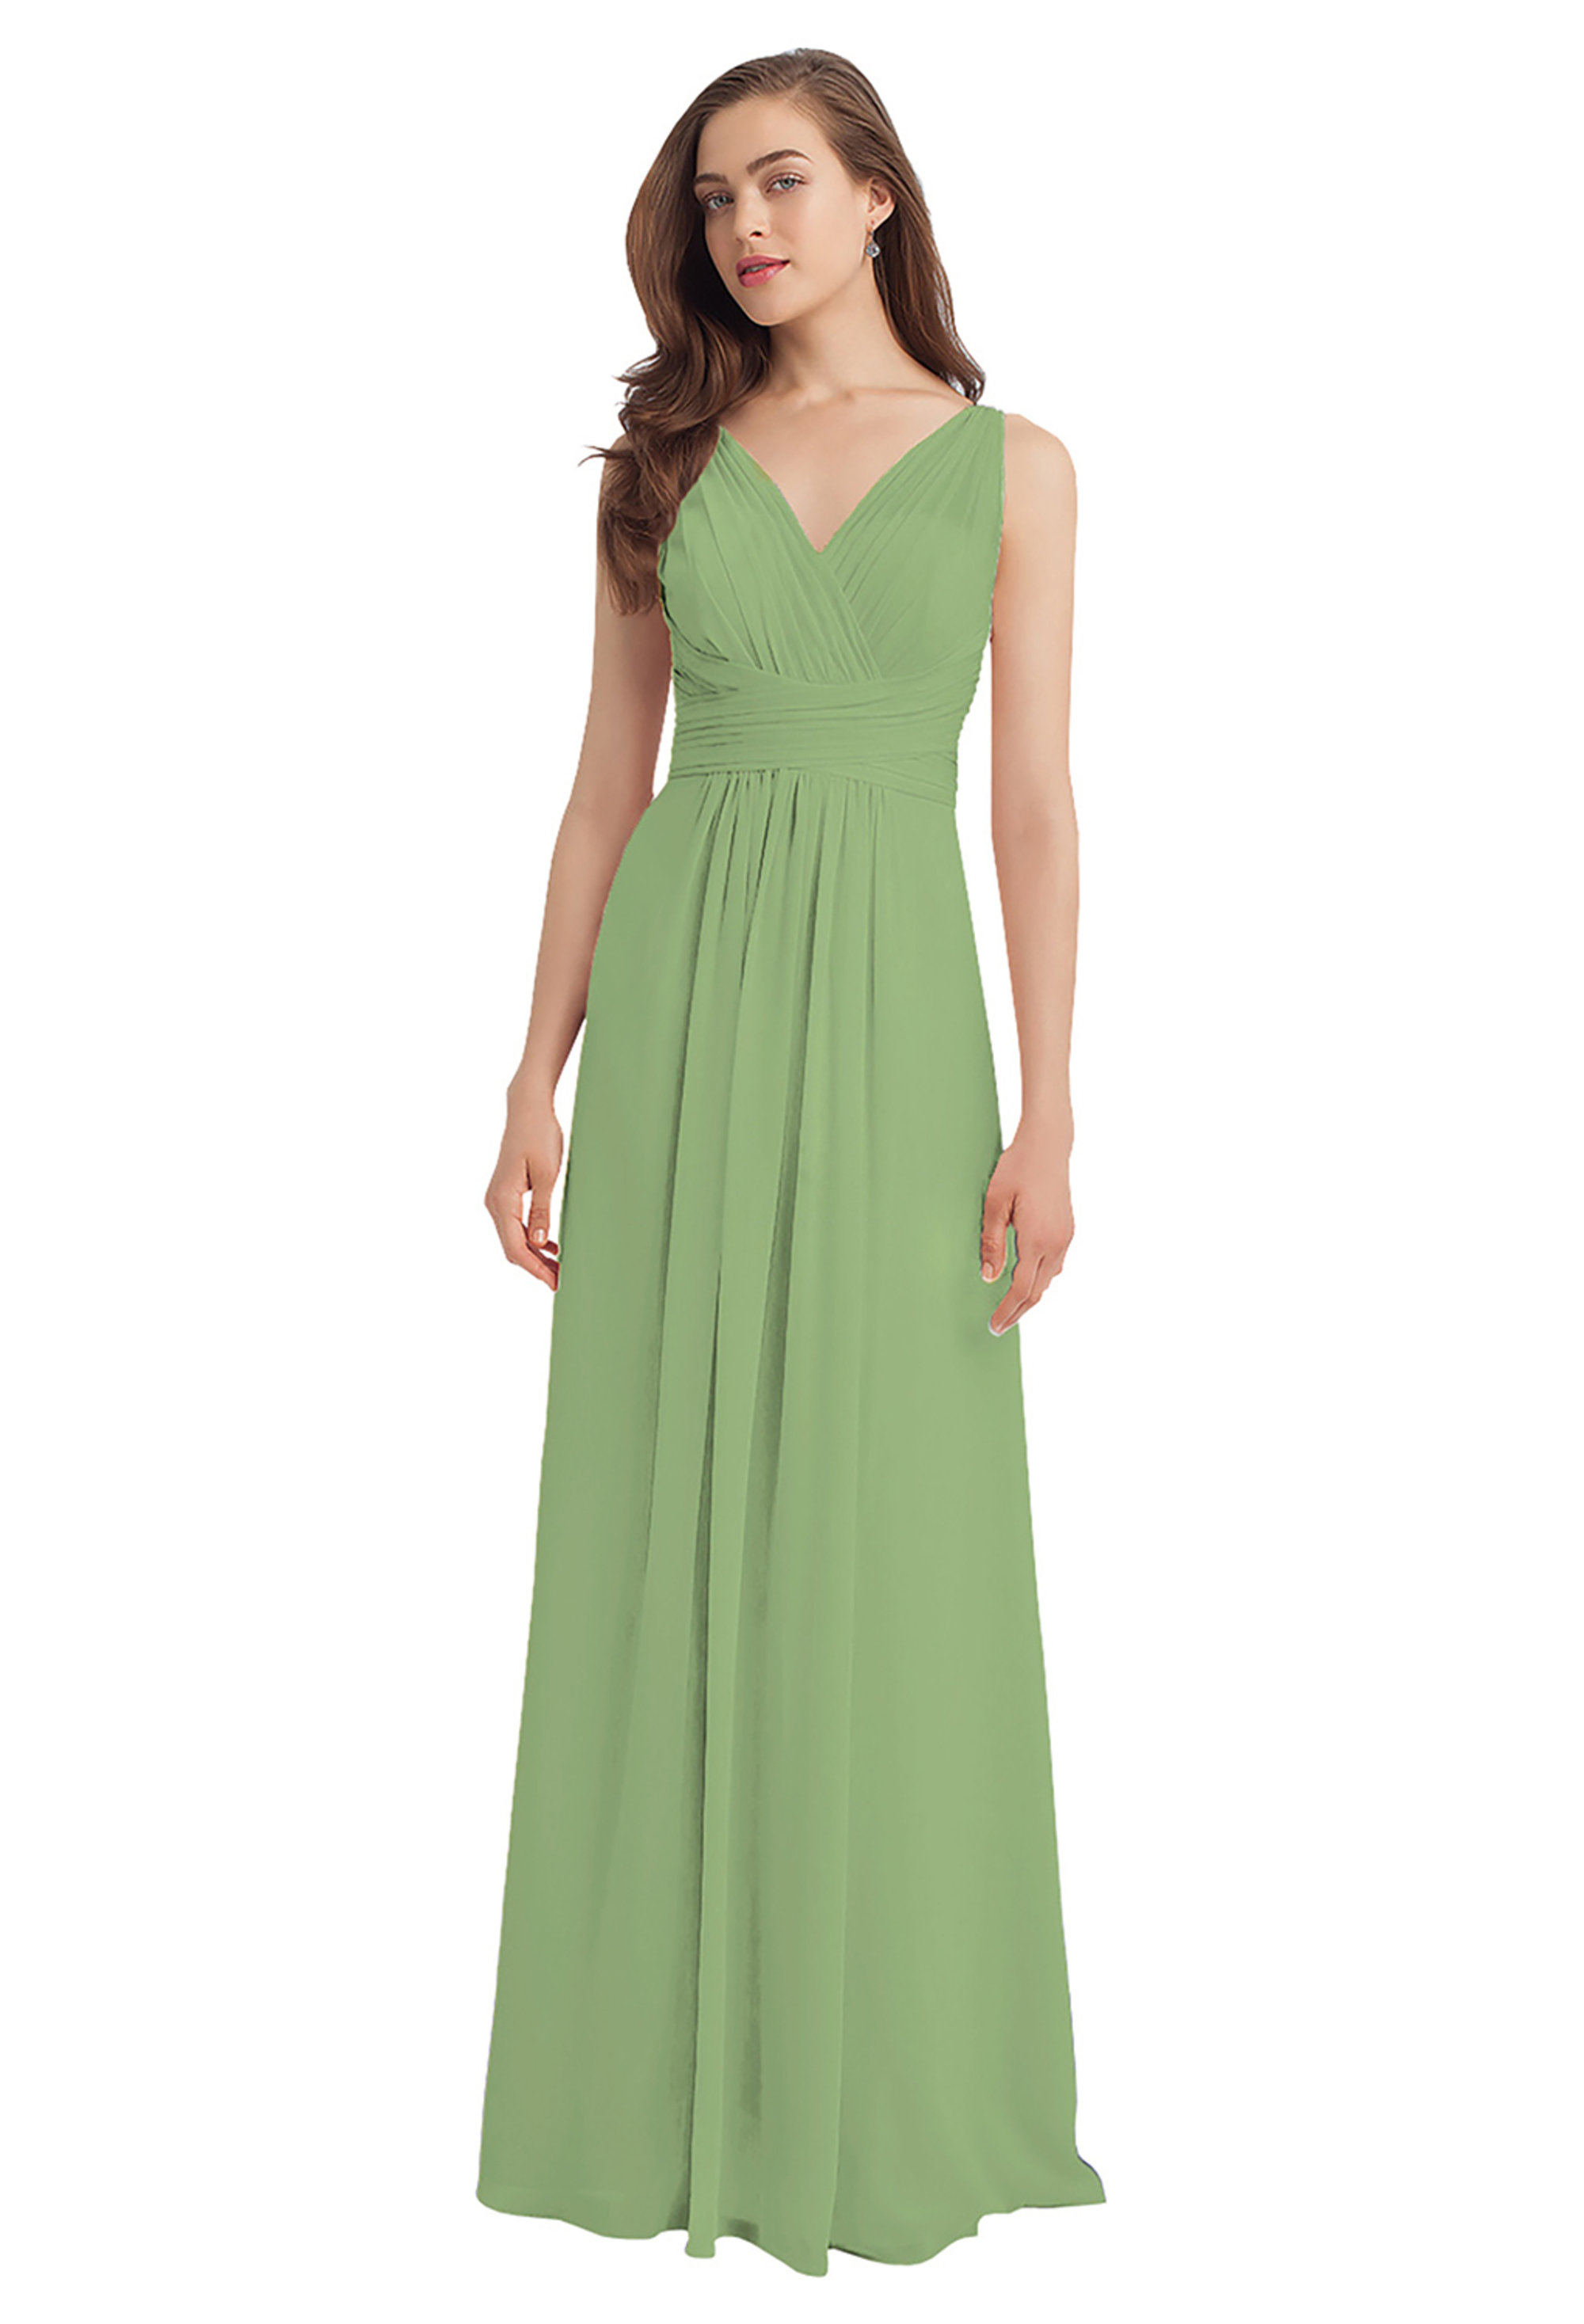 Bill Levkoff PISTACHIO Chiffon V-back A-line gown, $224.00 Front